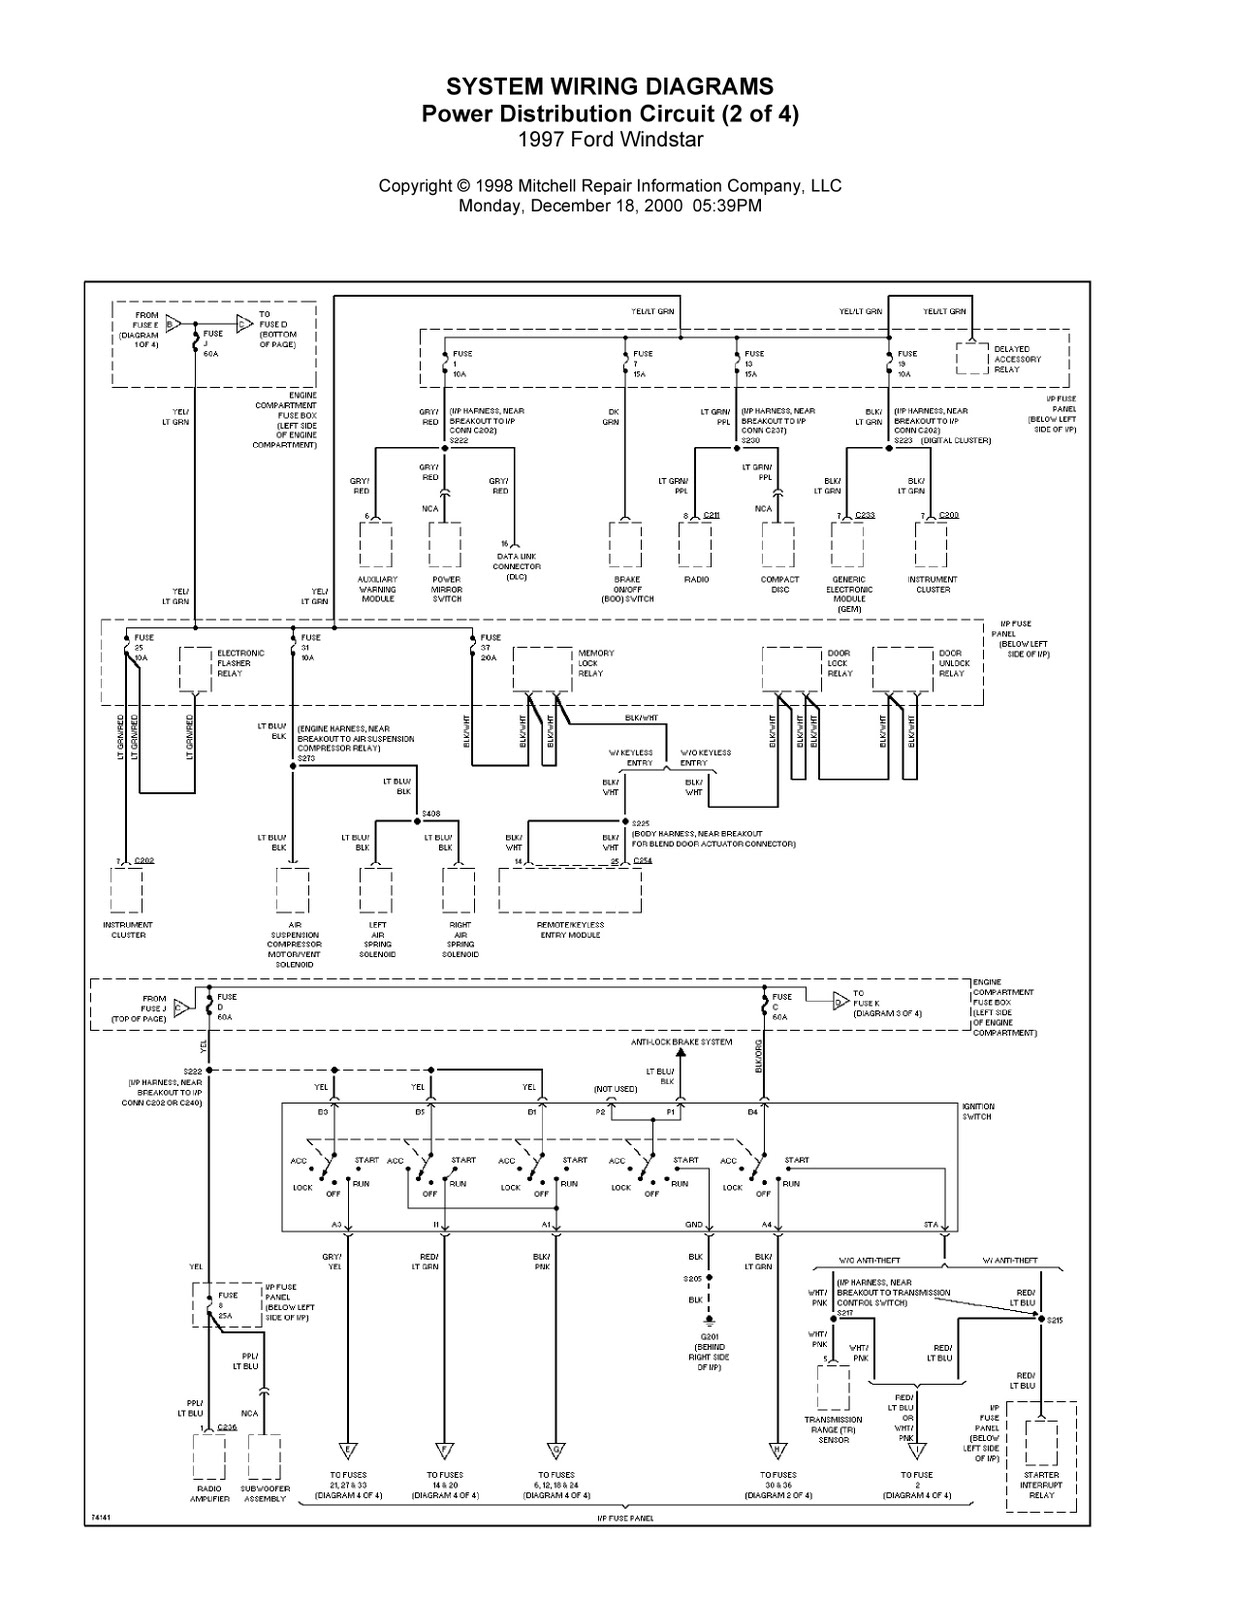 1999 Ford Windstar Wiring Diagram Light Relay Complete System Diagrams 1997